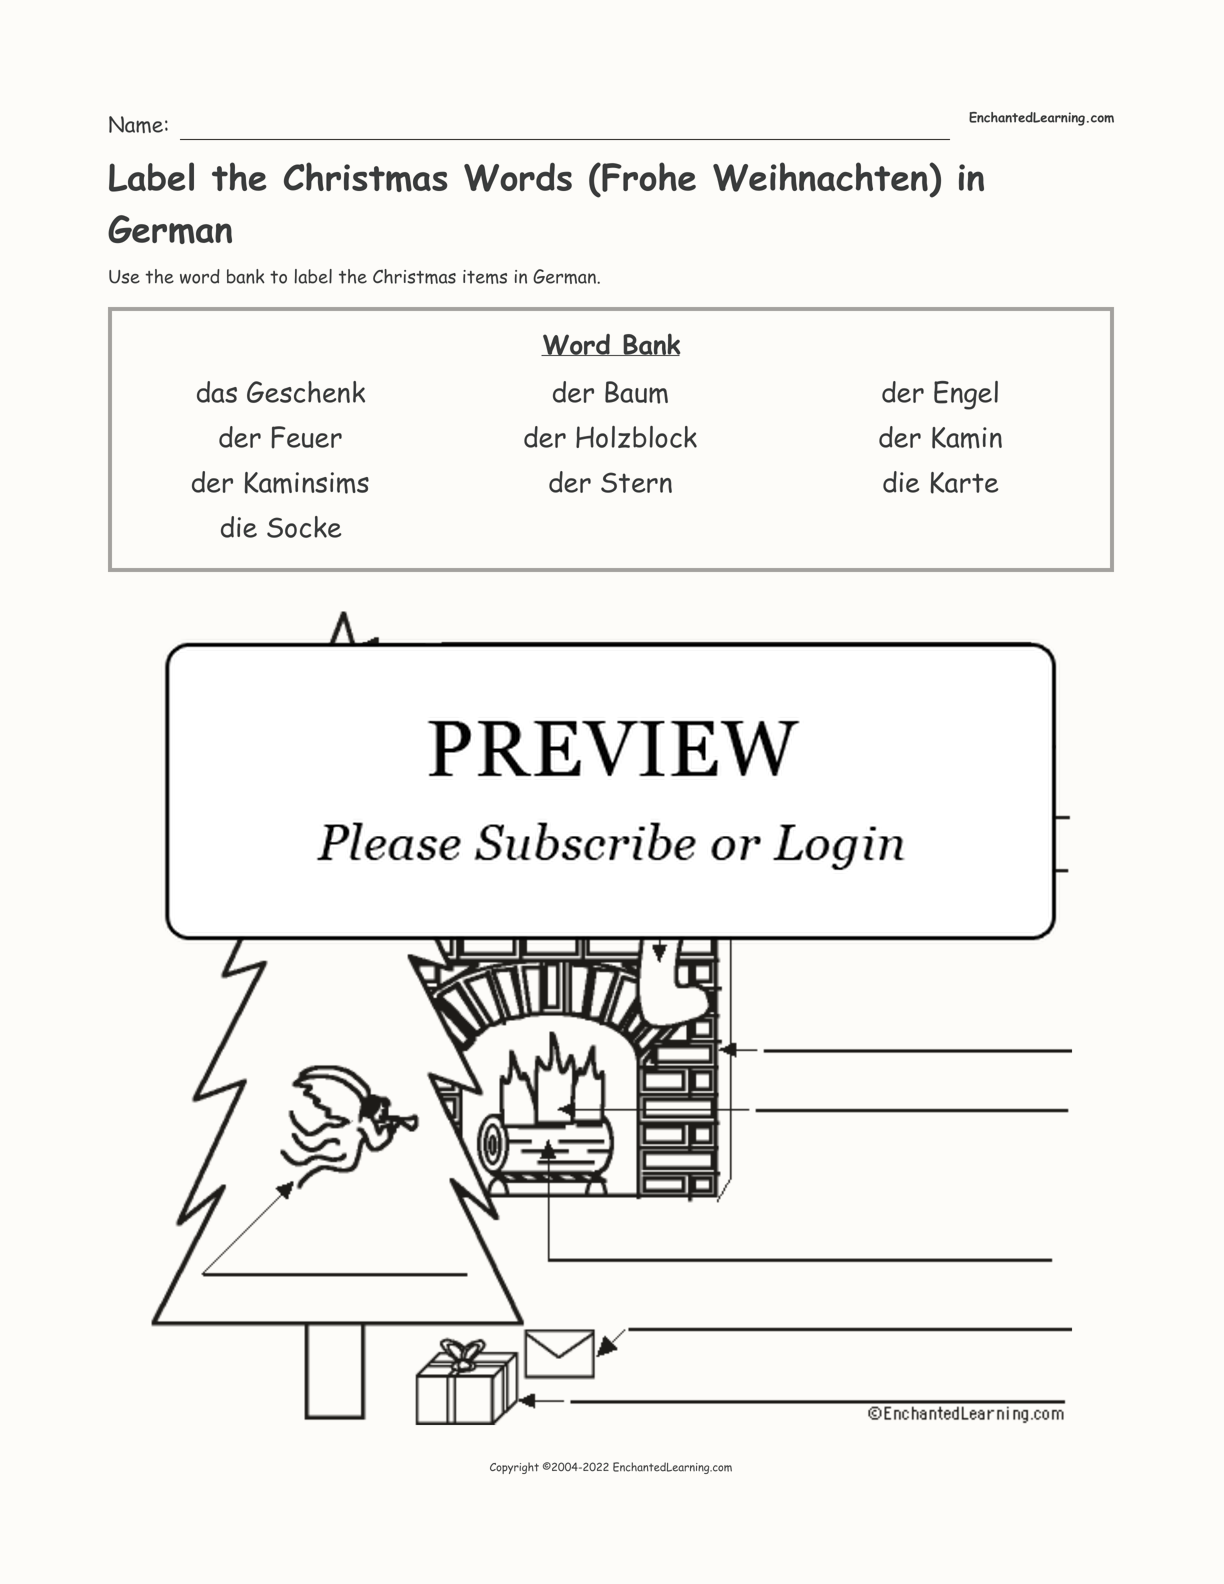 Label the Christmas Words (Frohe Weihnachten) in German interactive worksheet page 1